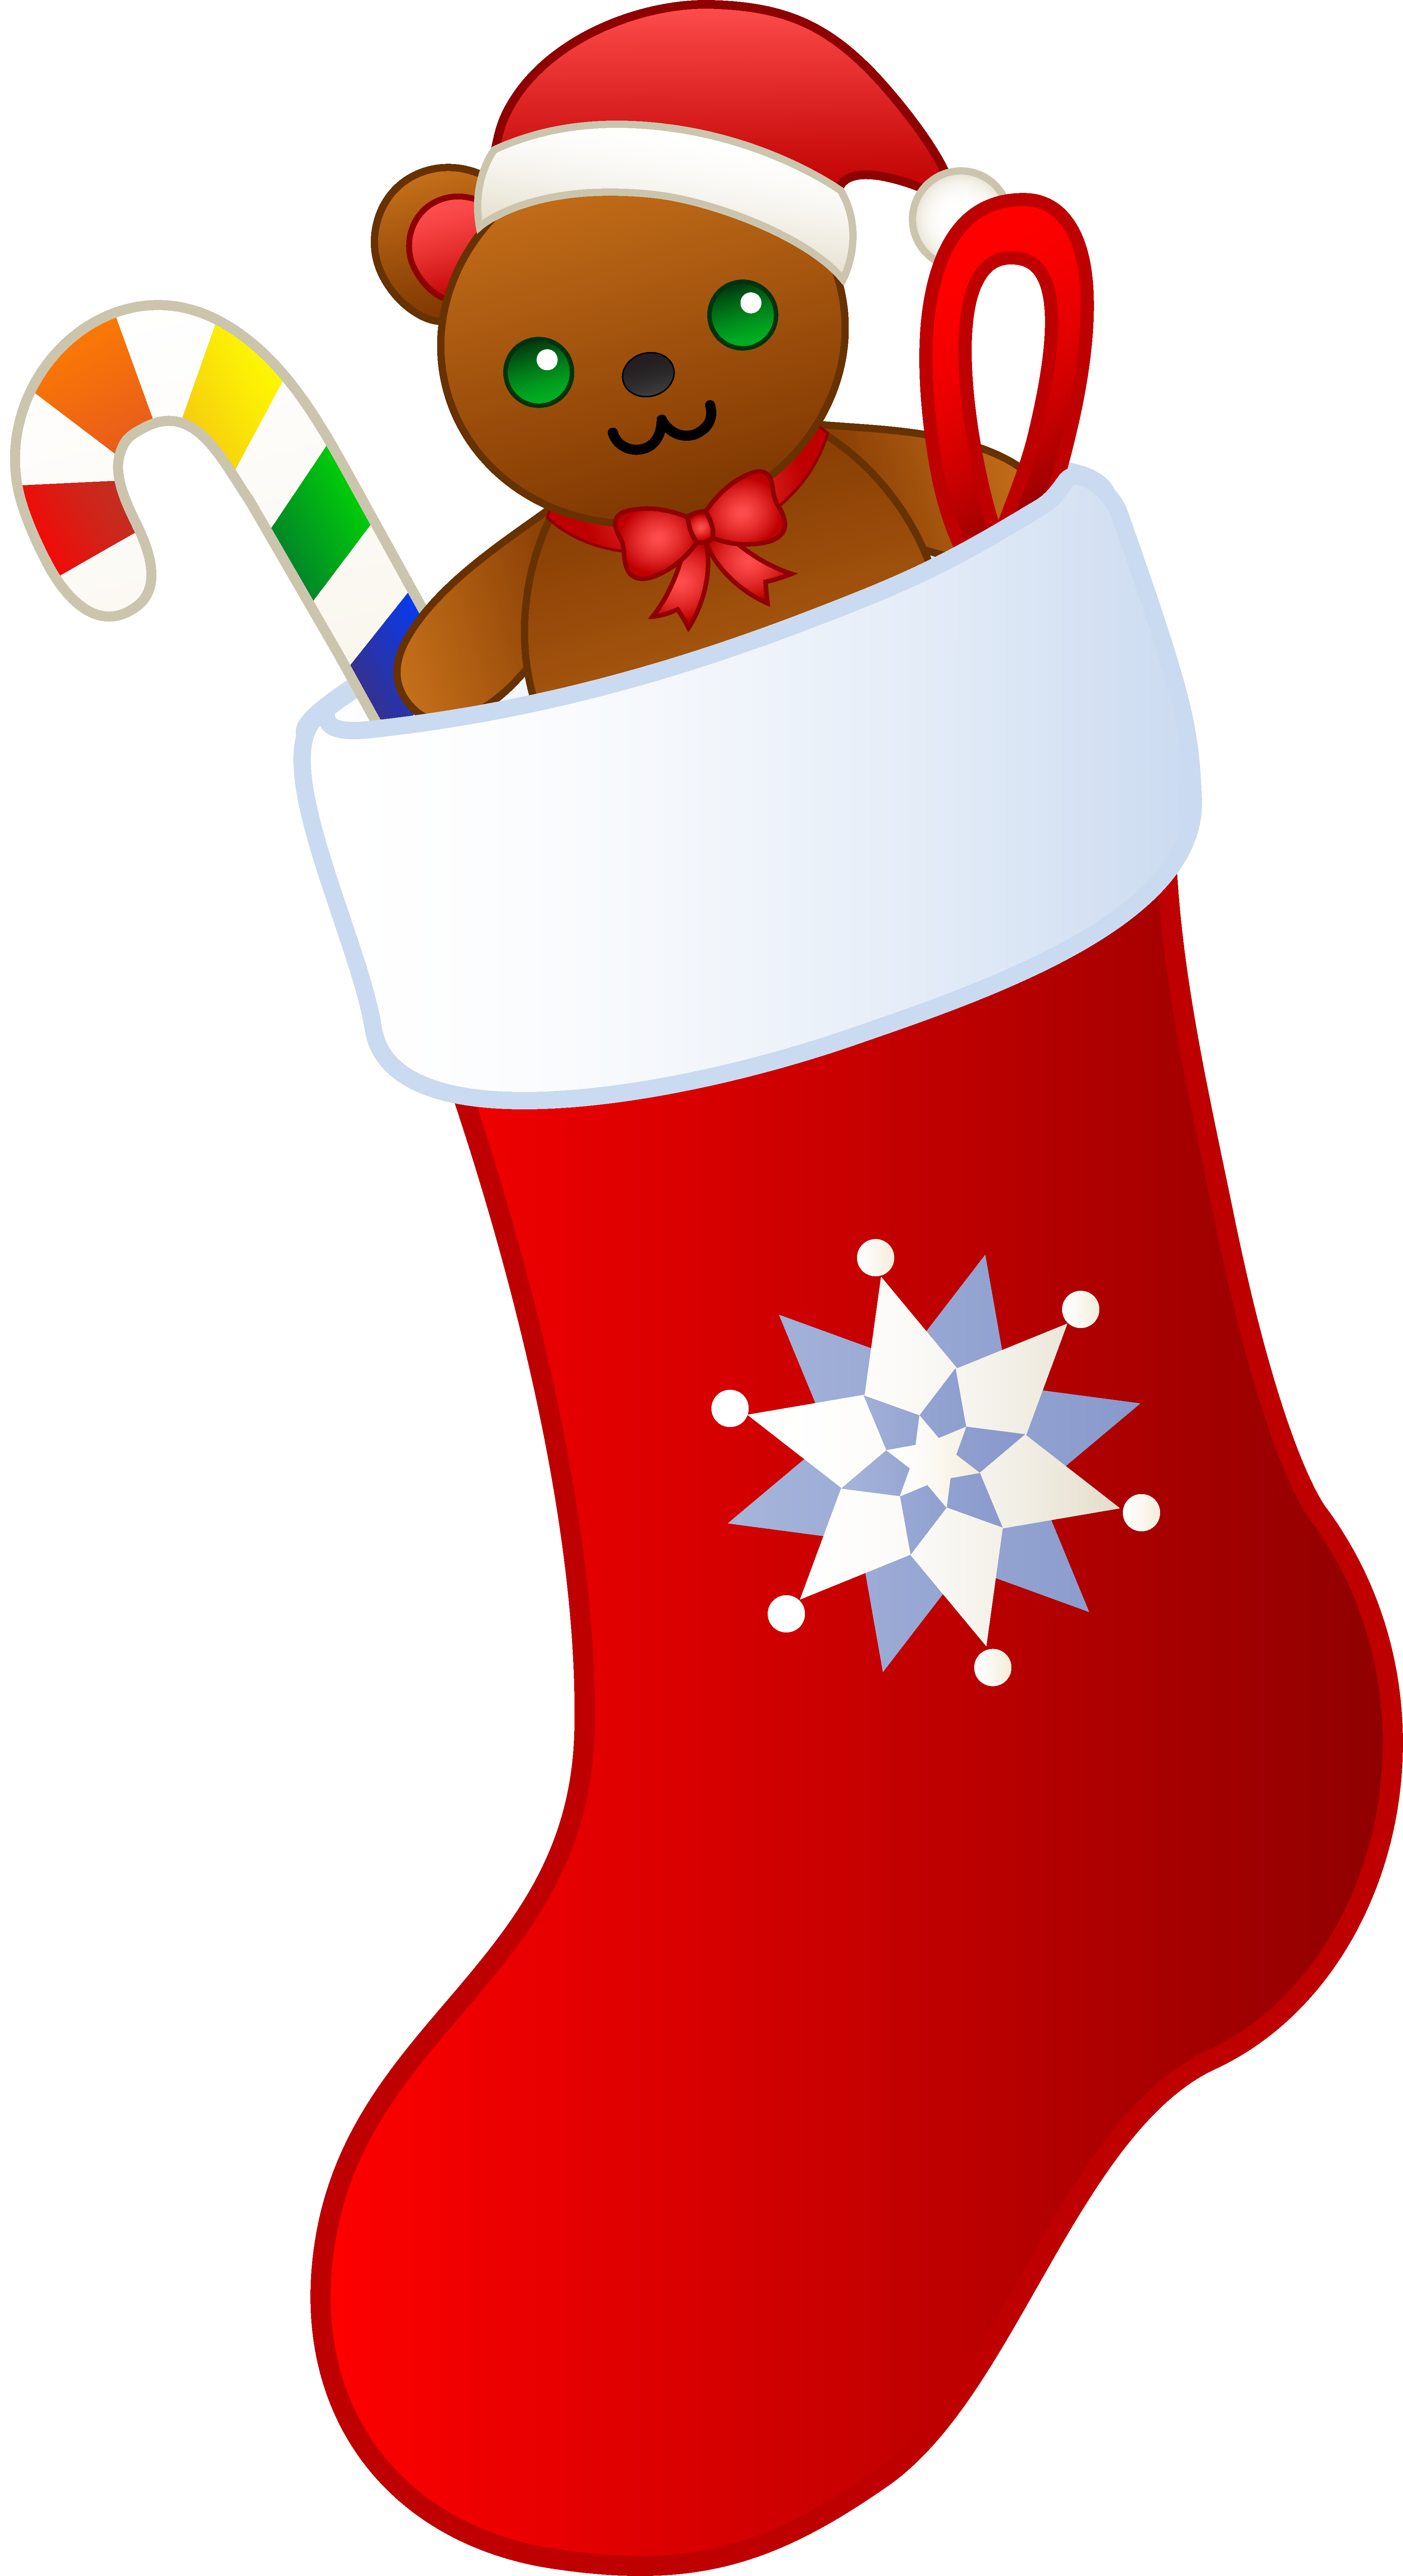 Stocking tree clipart svg stock Christmas Stocking Filled With Gifts - Free Clip Art svg stock